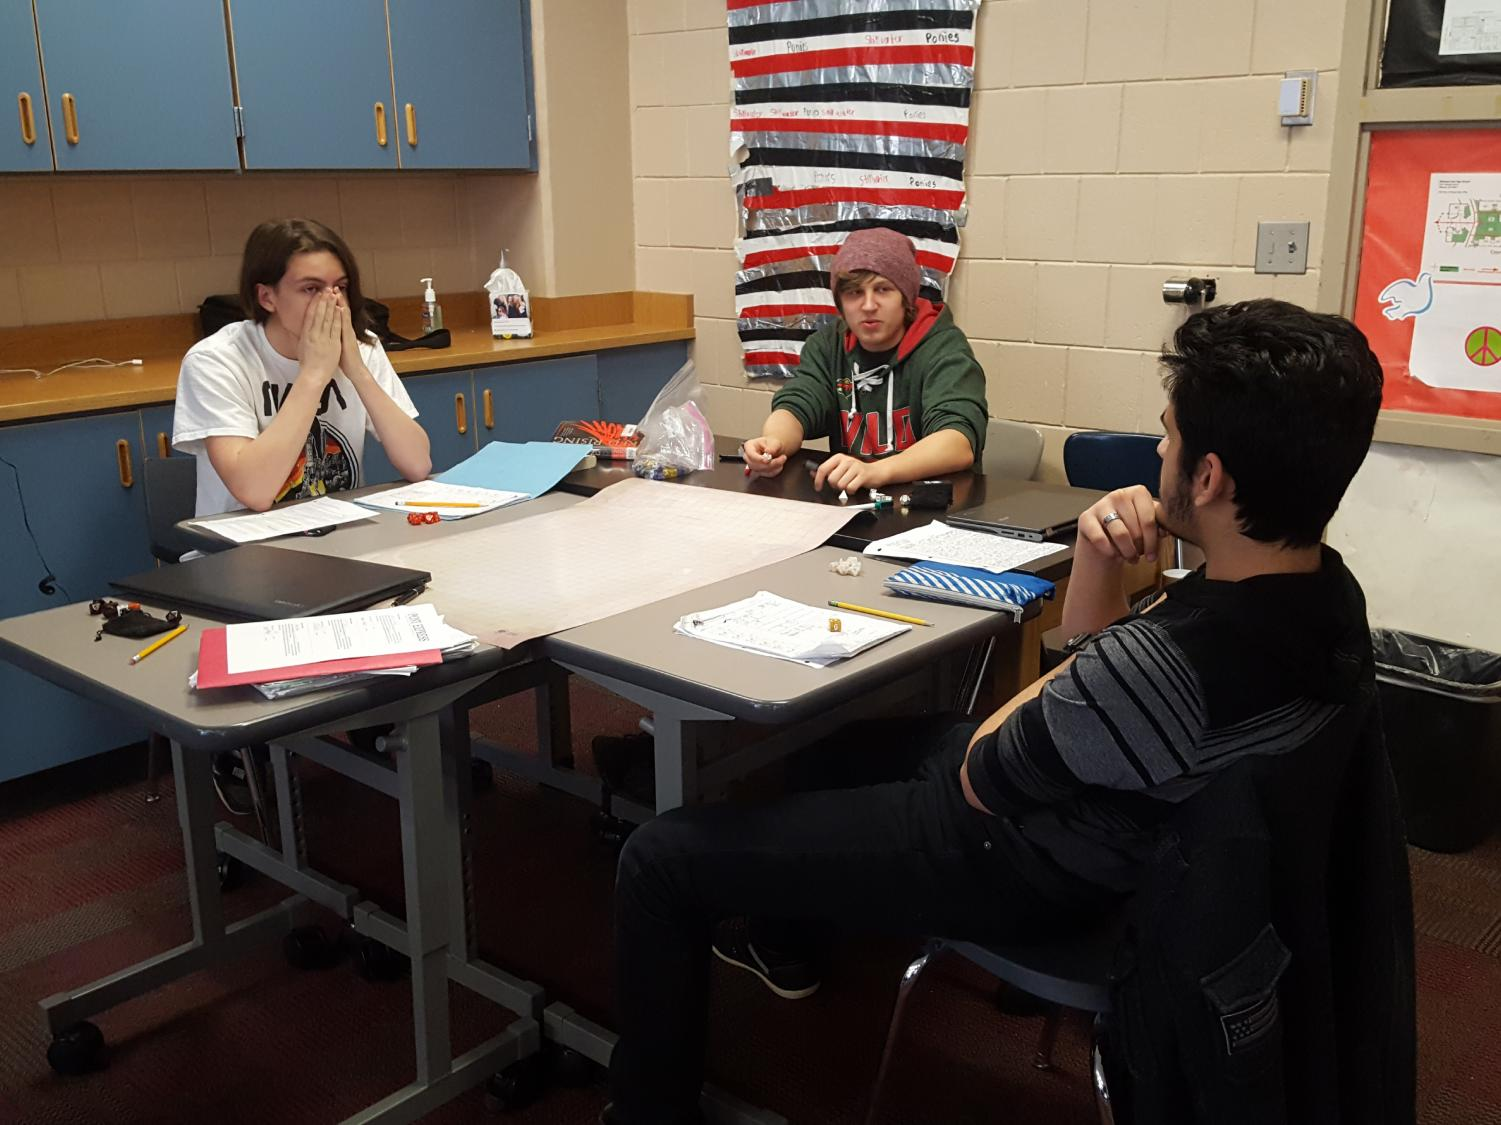 Dungeons and Dragons club debating over semantics. Pictured from left to right are Rowan Bell-Myers, Nathan Breisler, and Aztlan Sanchez. Two members of the group were not present at the session on February 12. The adventuring frequently gets side-tracked when someone brings up memes or the practicalities of magic in real life.